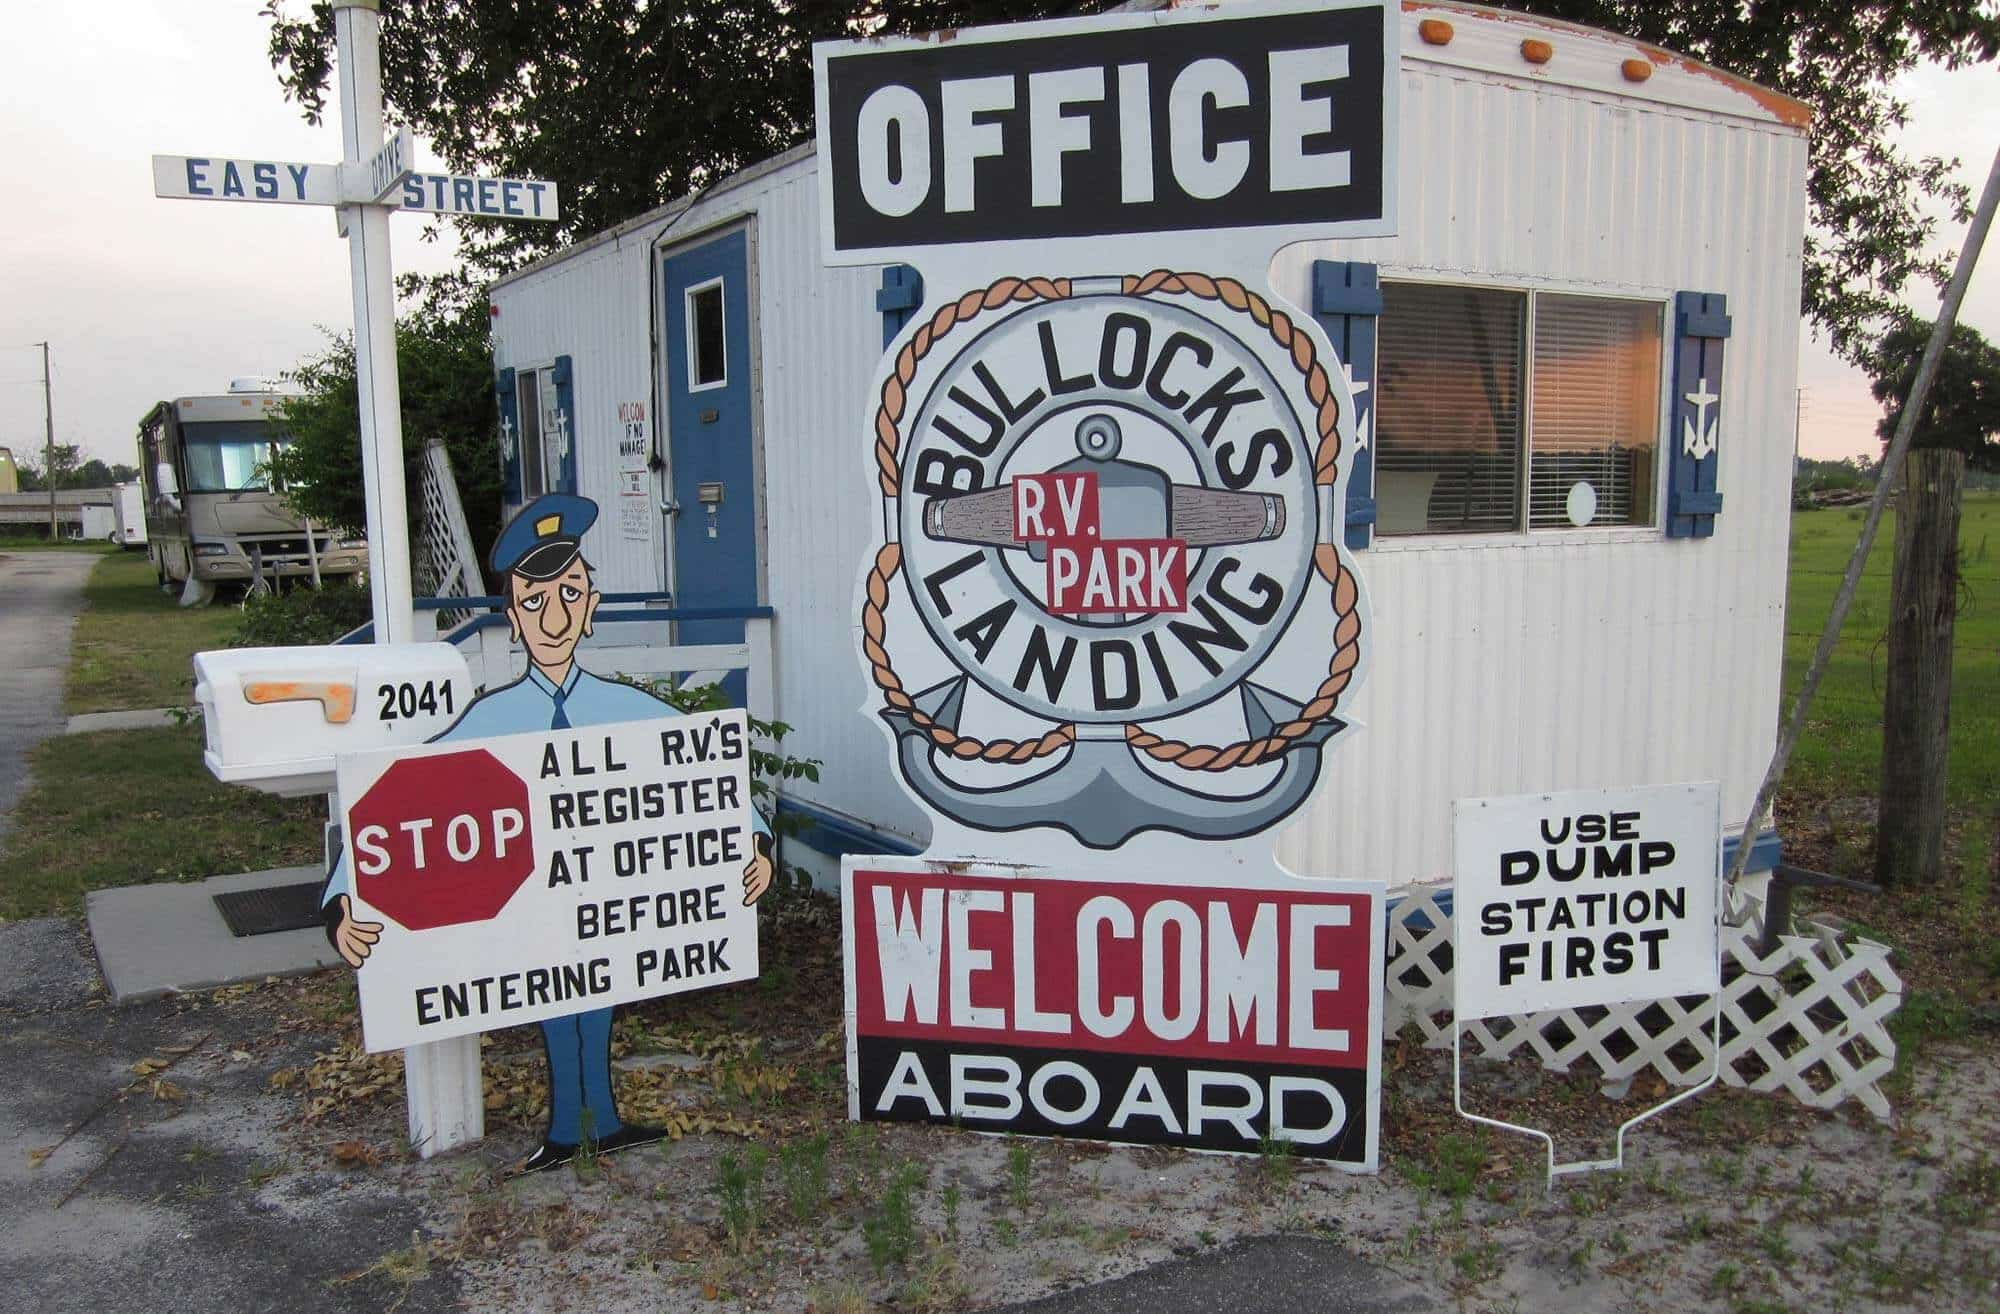 entrance and office at Bullock's Landing RV campground in Lake Wales, FL